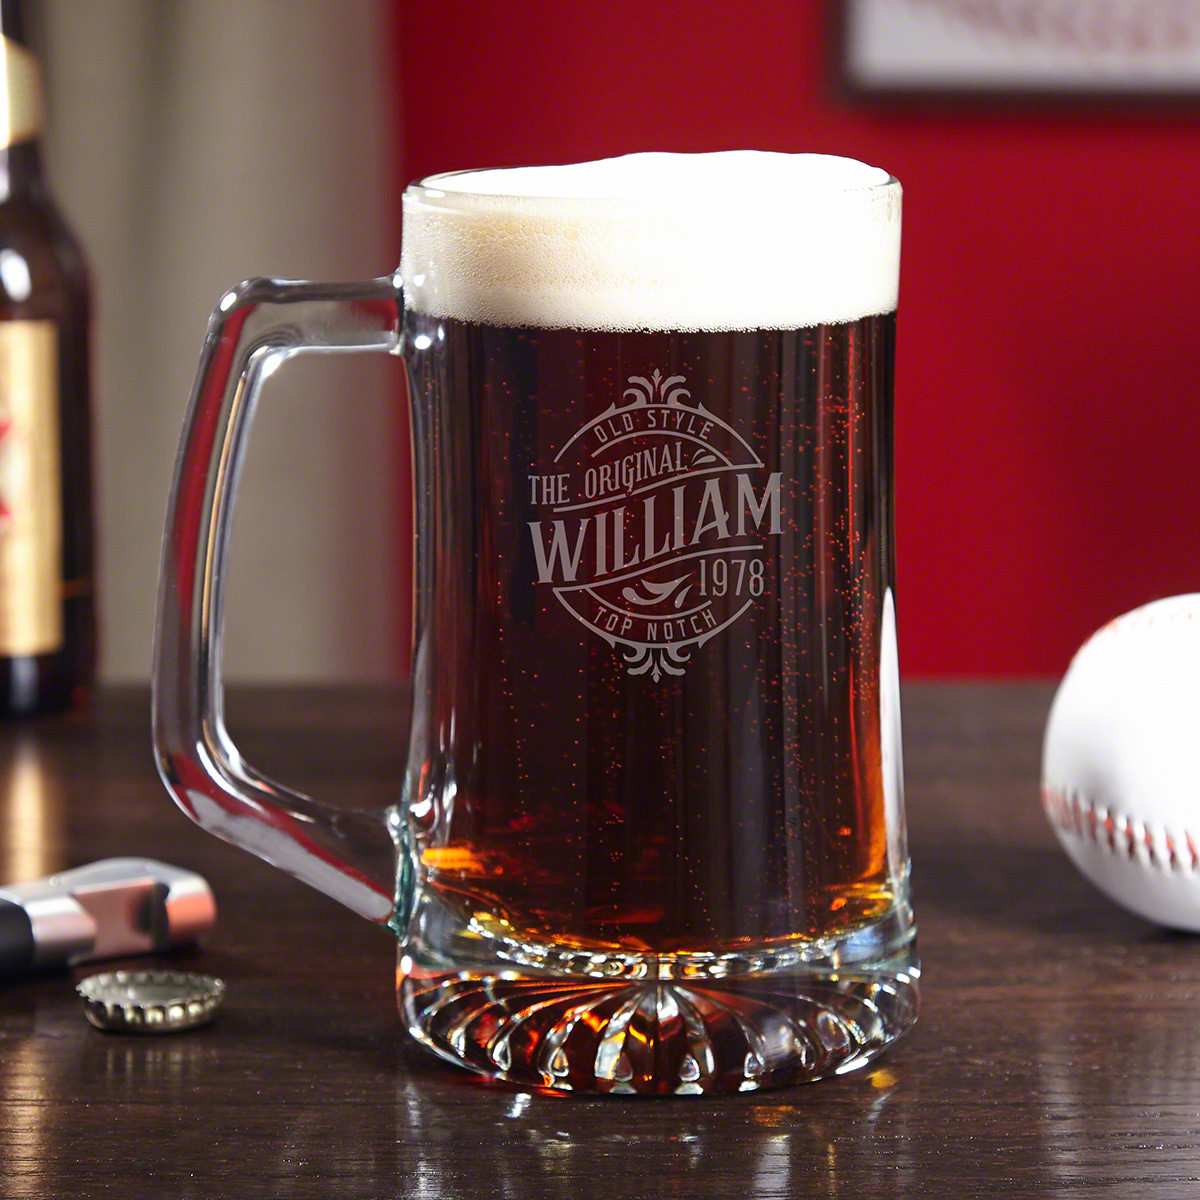 Do you remember when you had your first beer? It was exciting, delicious, and you've never had a beer as good as that first one again. With this personalized beer mug, you can relive that experience over and over. Our mugs are designed to make your beer #mug